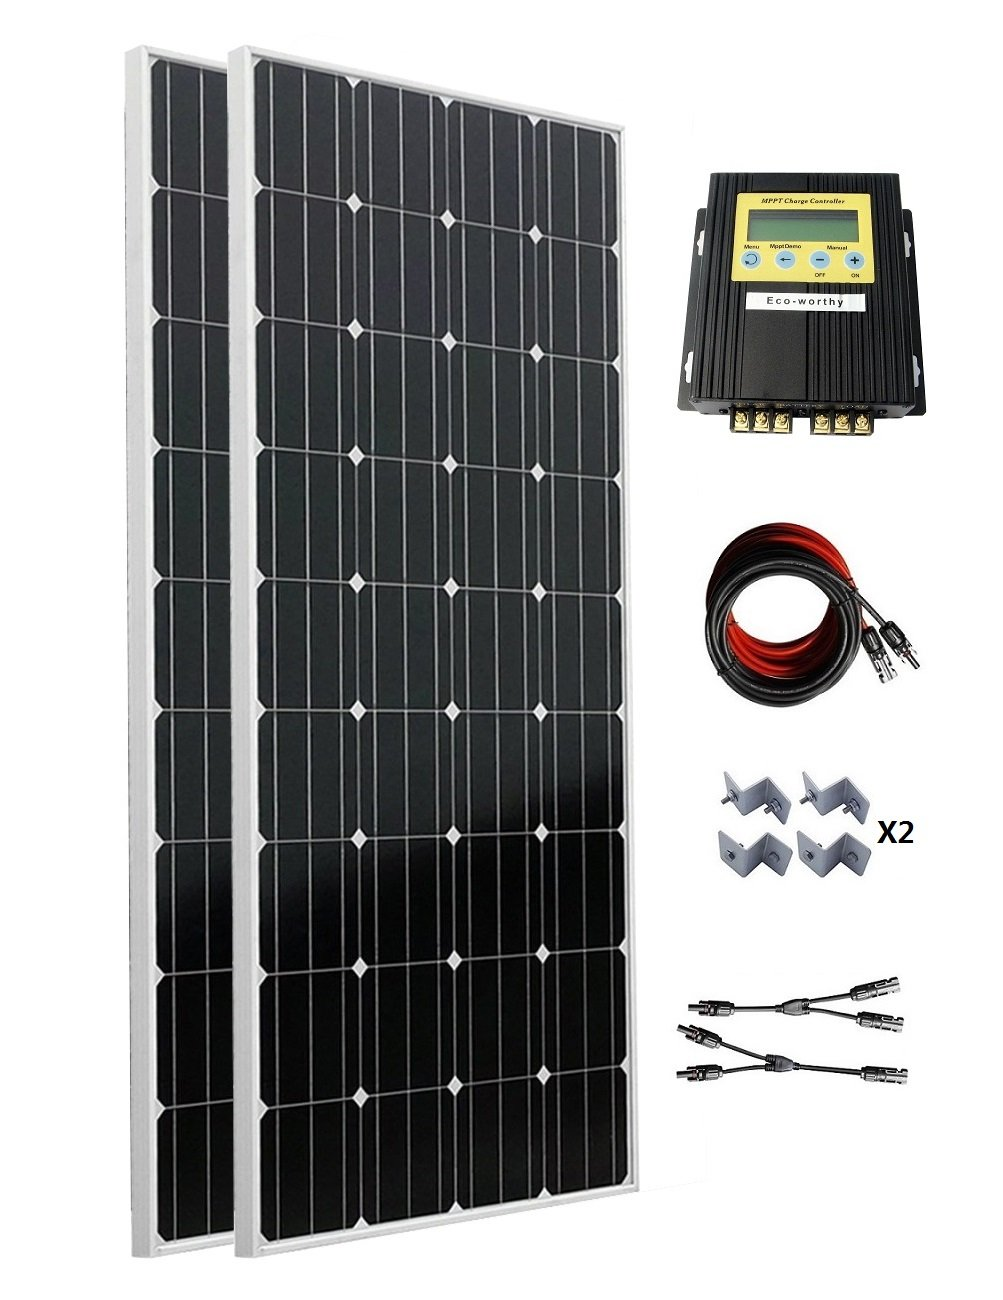 ECO-WORTHY 300 Watt (2PC 160W) Monocrystalline Off Grid Solar Panel Kit with 20A MPPT Charge Controller for 12V/24V Battery